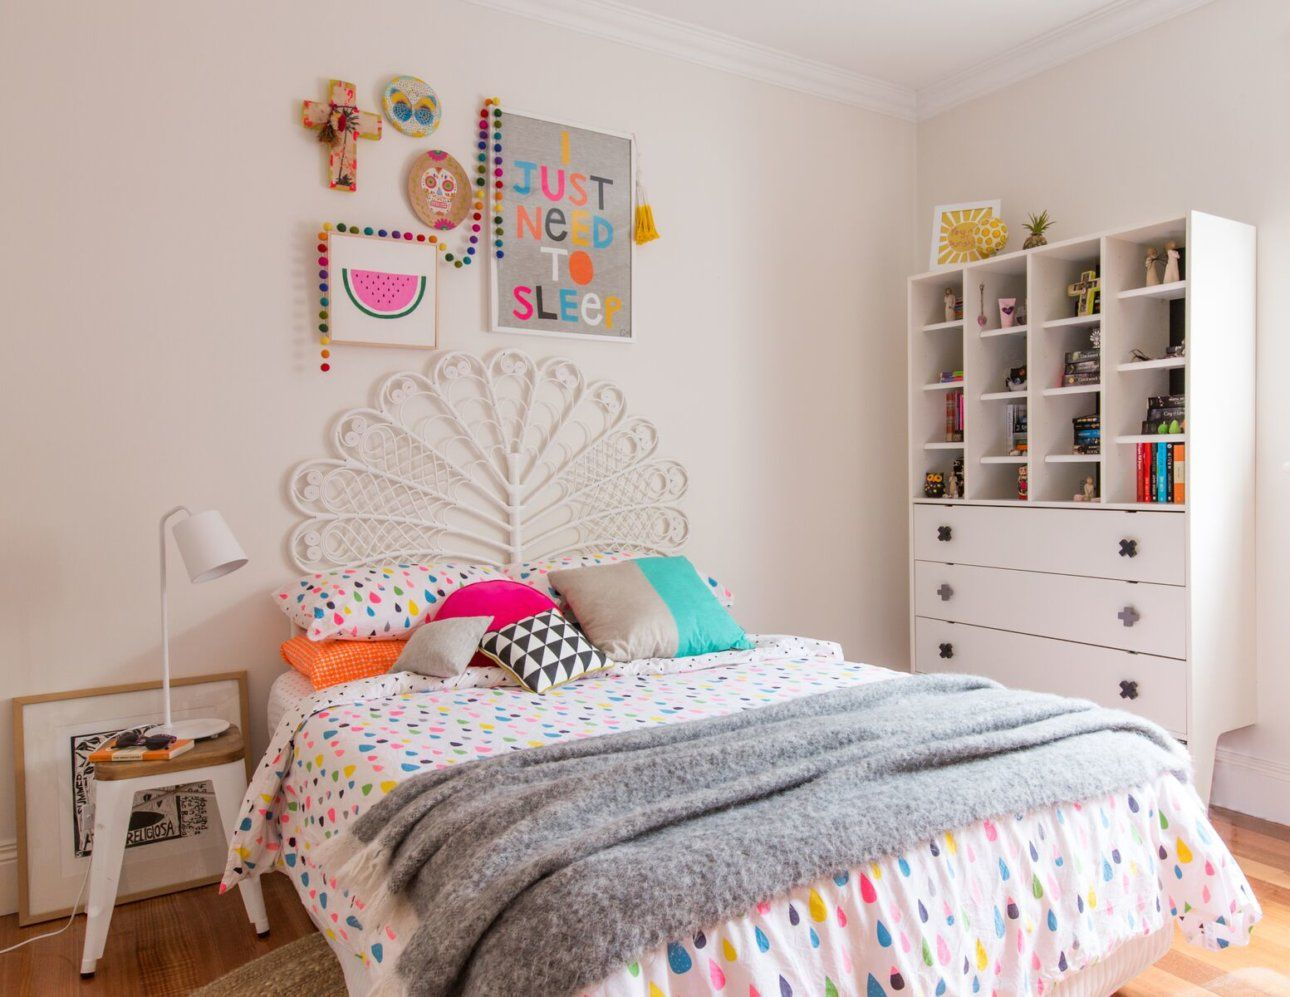 8 tween girls bedroom ideas is part of Girls bedroom 8 Year Old - Even though I don't have girls I still love looking at tween girls bedrooms  They are so pretty! I am used to boys, lots of blue and masculine touches, but it's fun to see what the trends are when it comes to the girls  First it's the nursery, then a little girls bedroom, then to tweens …